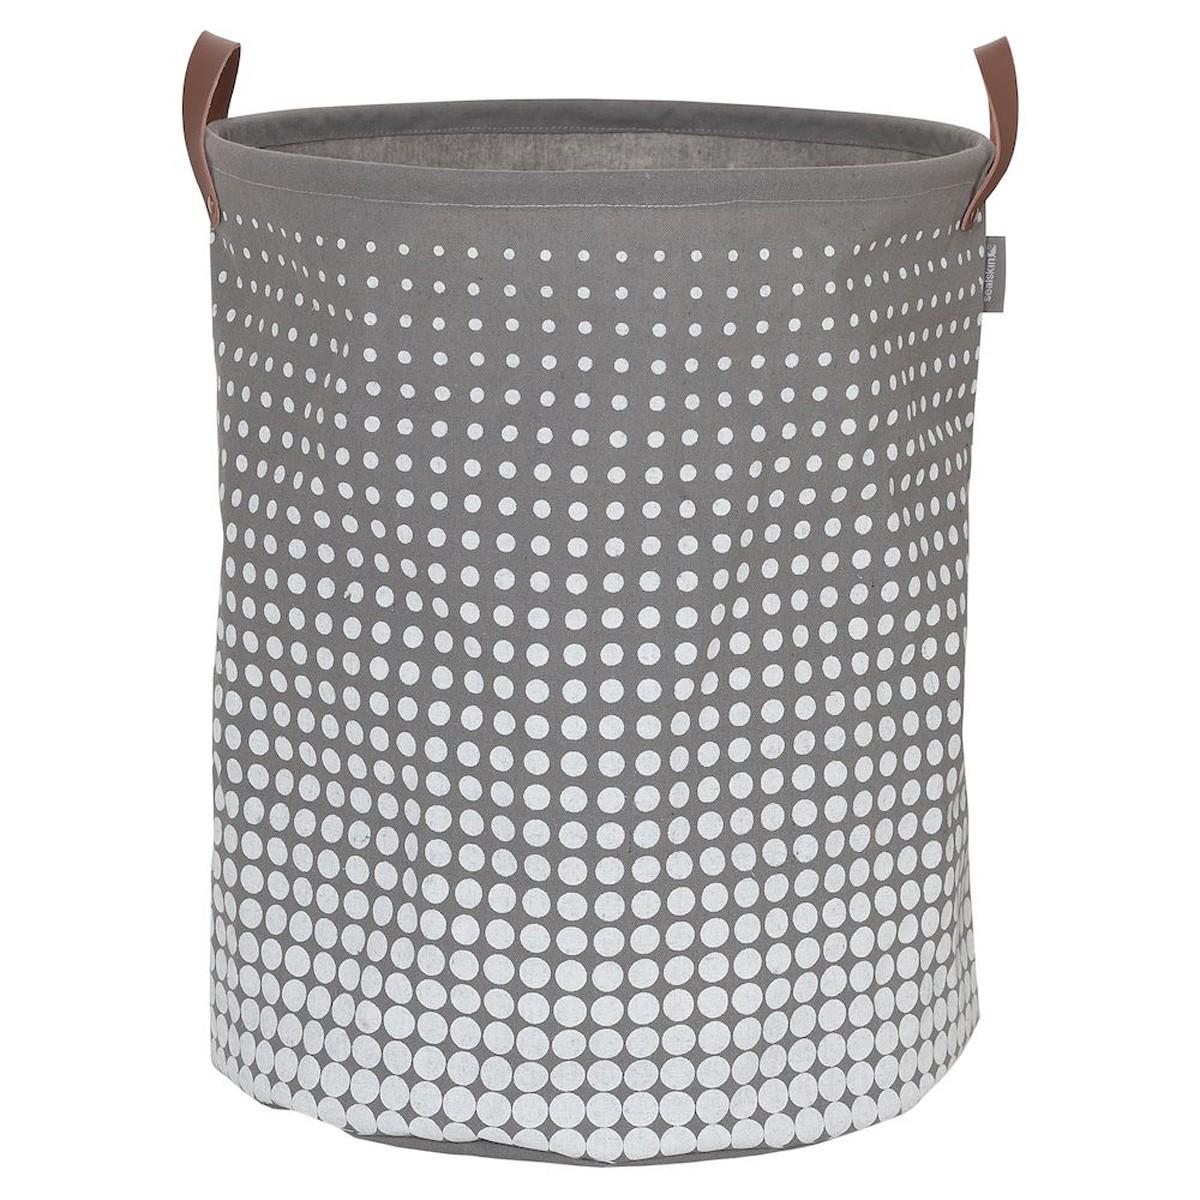 Καλάθι Απλύτων SealSkin Speckles Laundry Bag